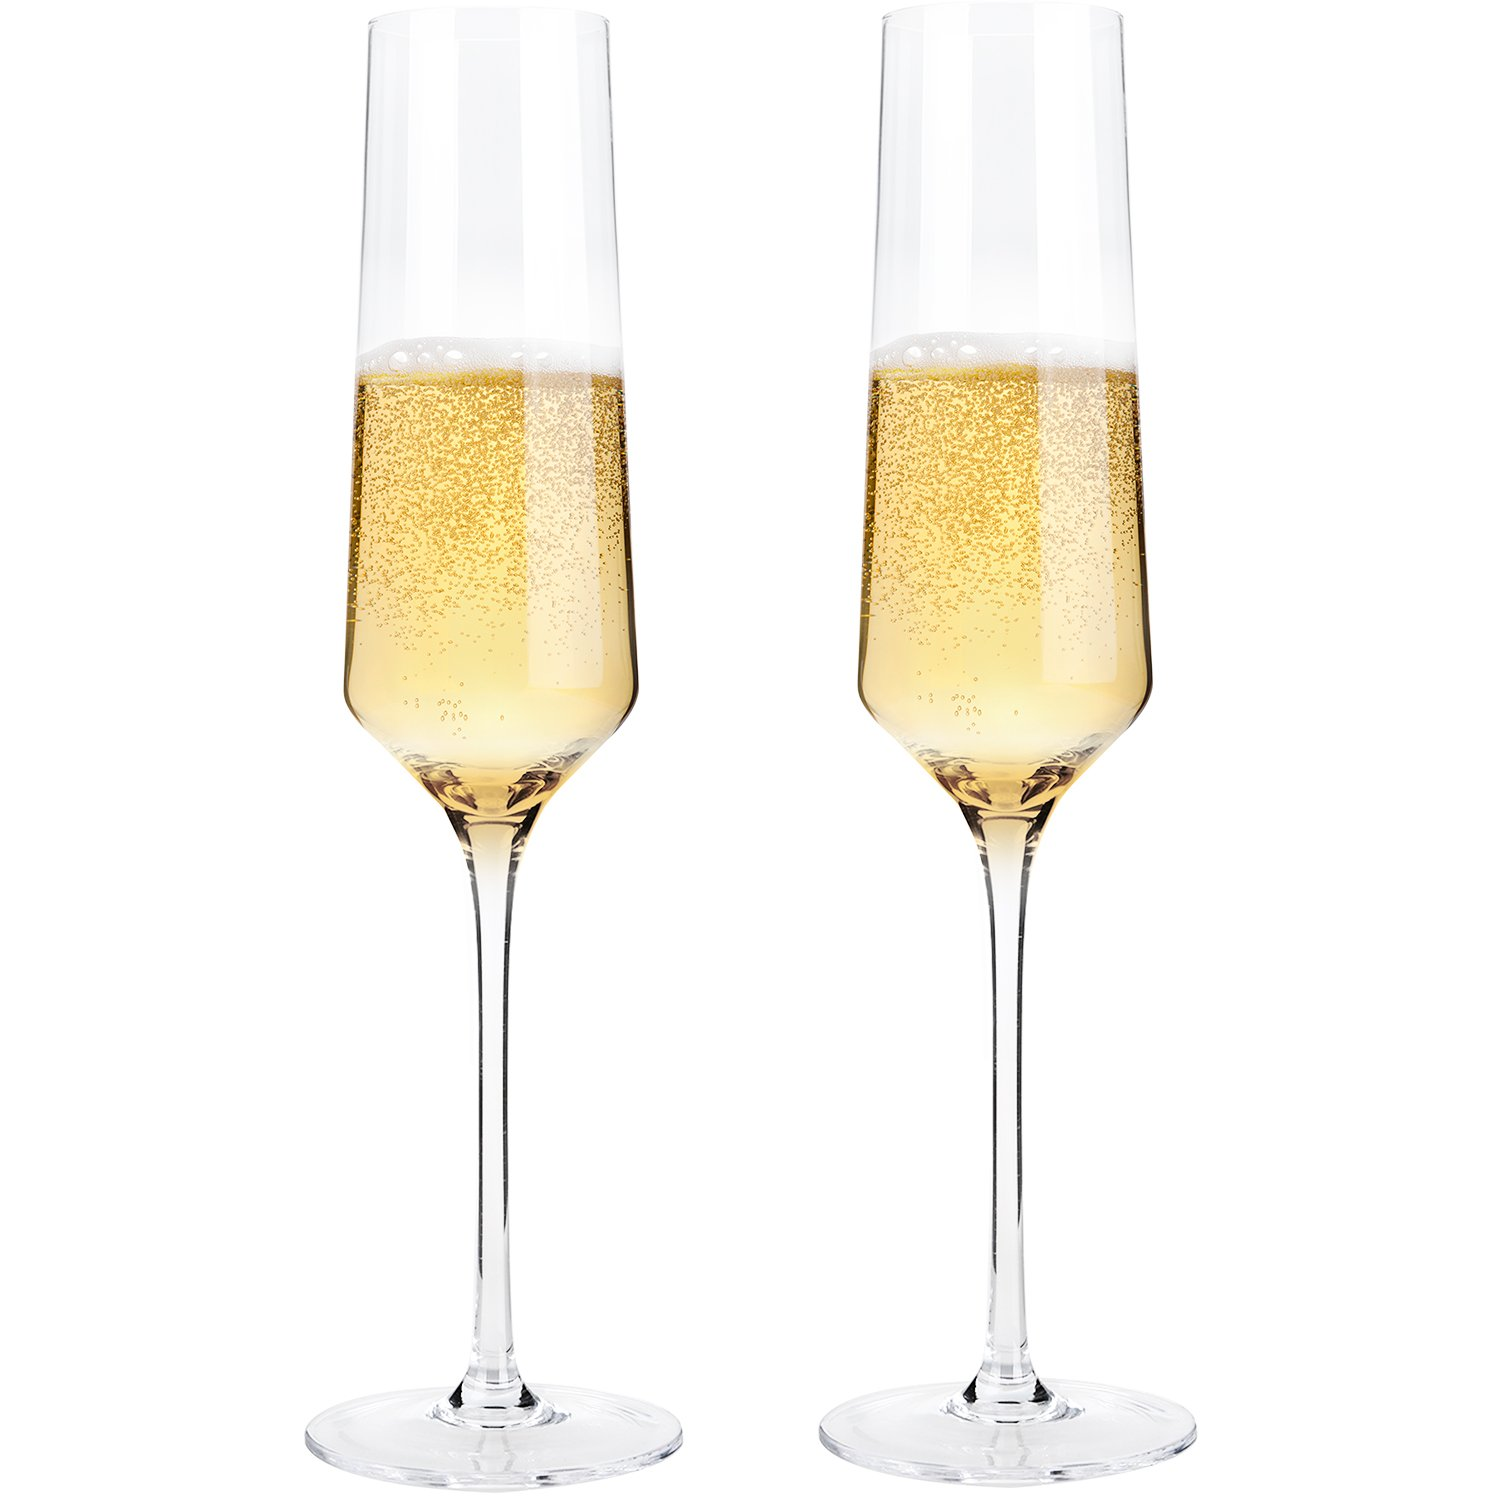 Hand Blown Crystal Champagne Flutes - Bella Vino Elegant Champagne Glasses Made from 100% Lead Free Premium Crystal Glass,Perfect for Any Occasion,Great Gift, 10'', 7 Oz, Set of 2, Clear